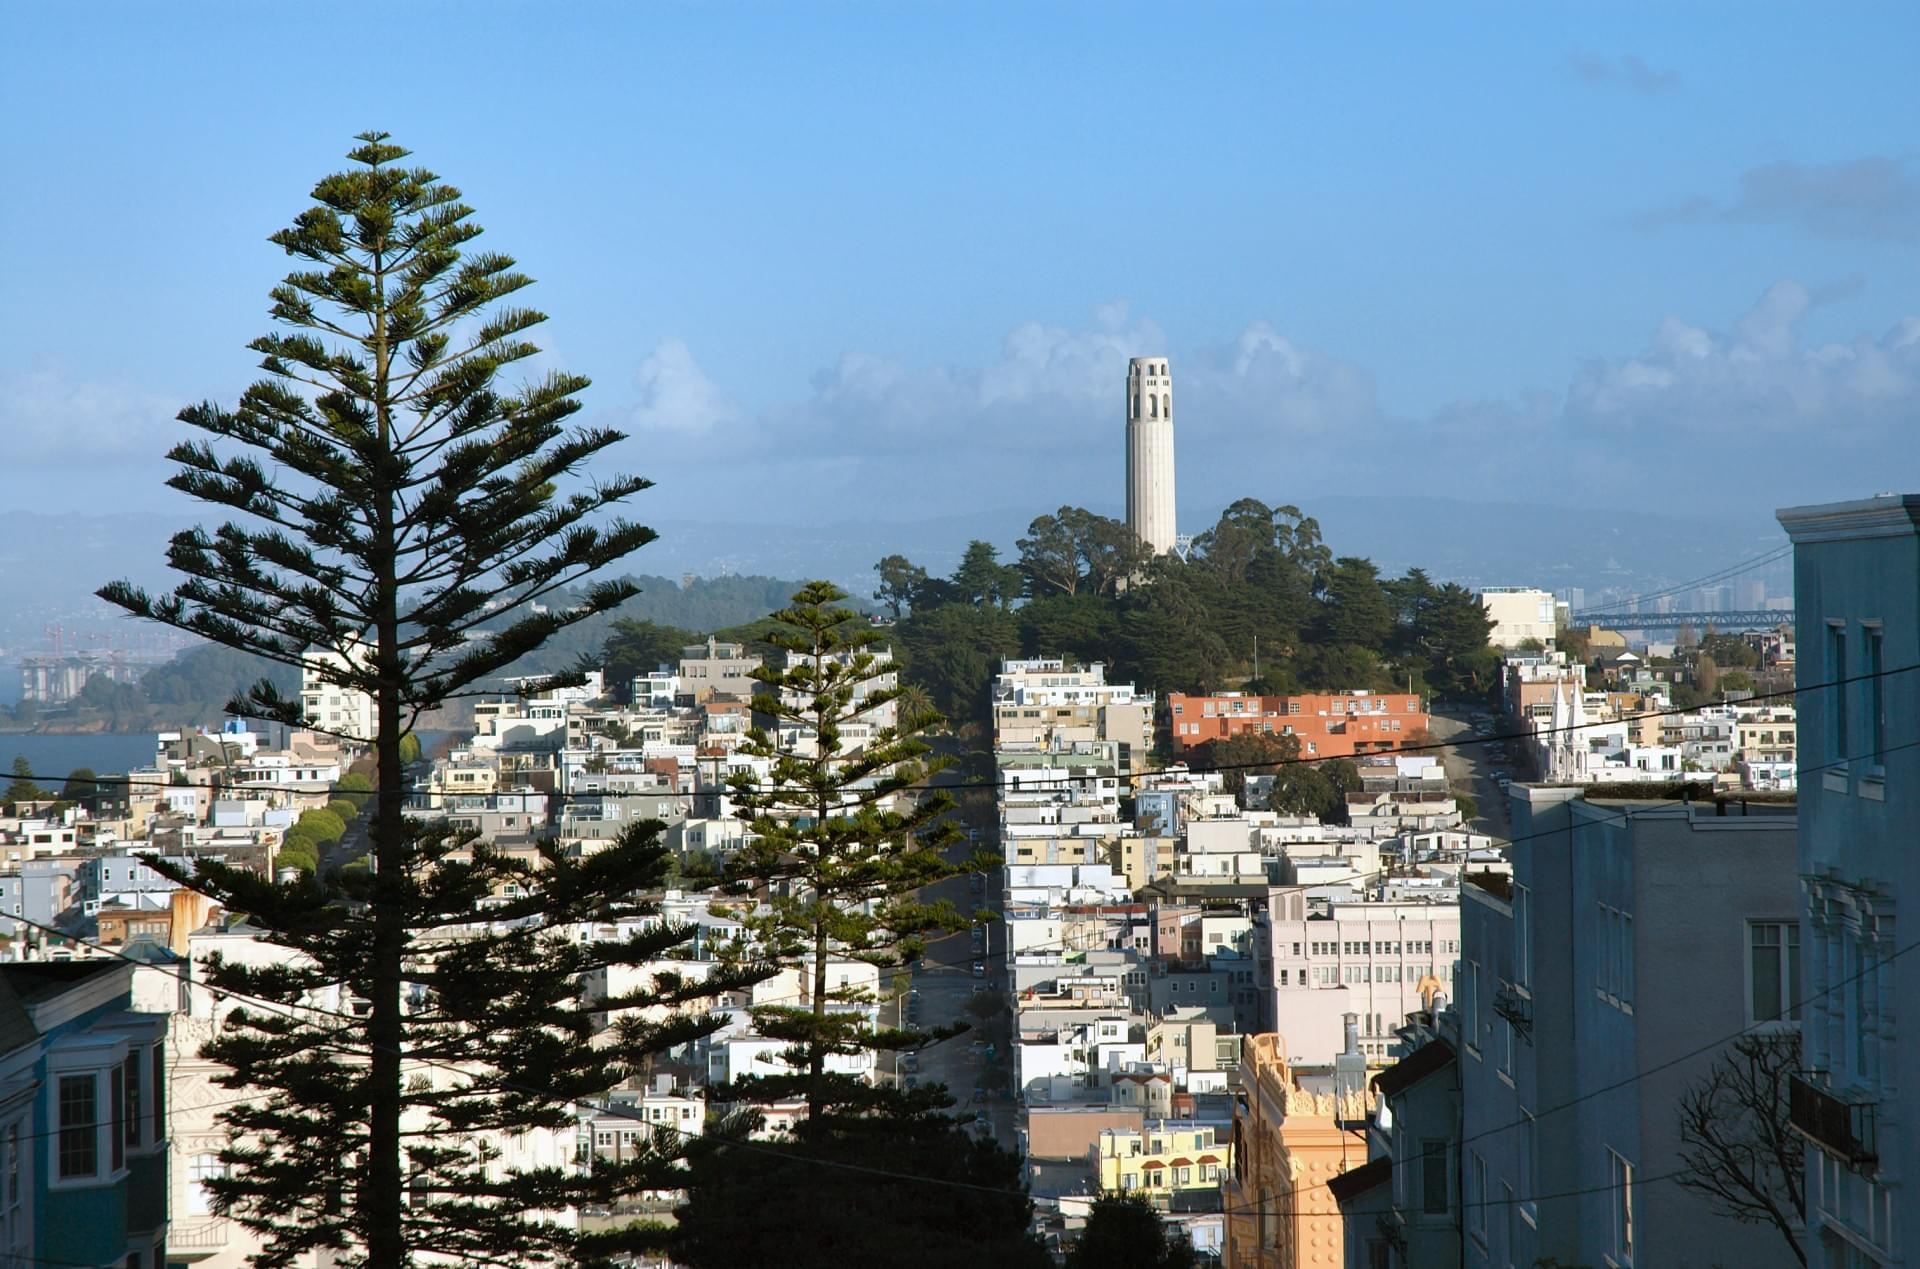 Telegraph Hill / Coit Tower